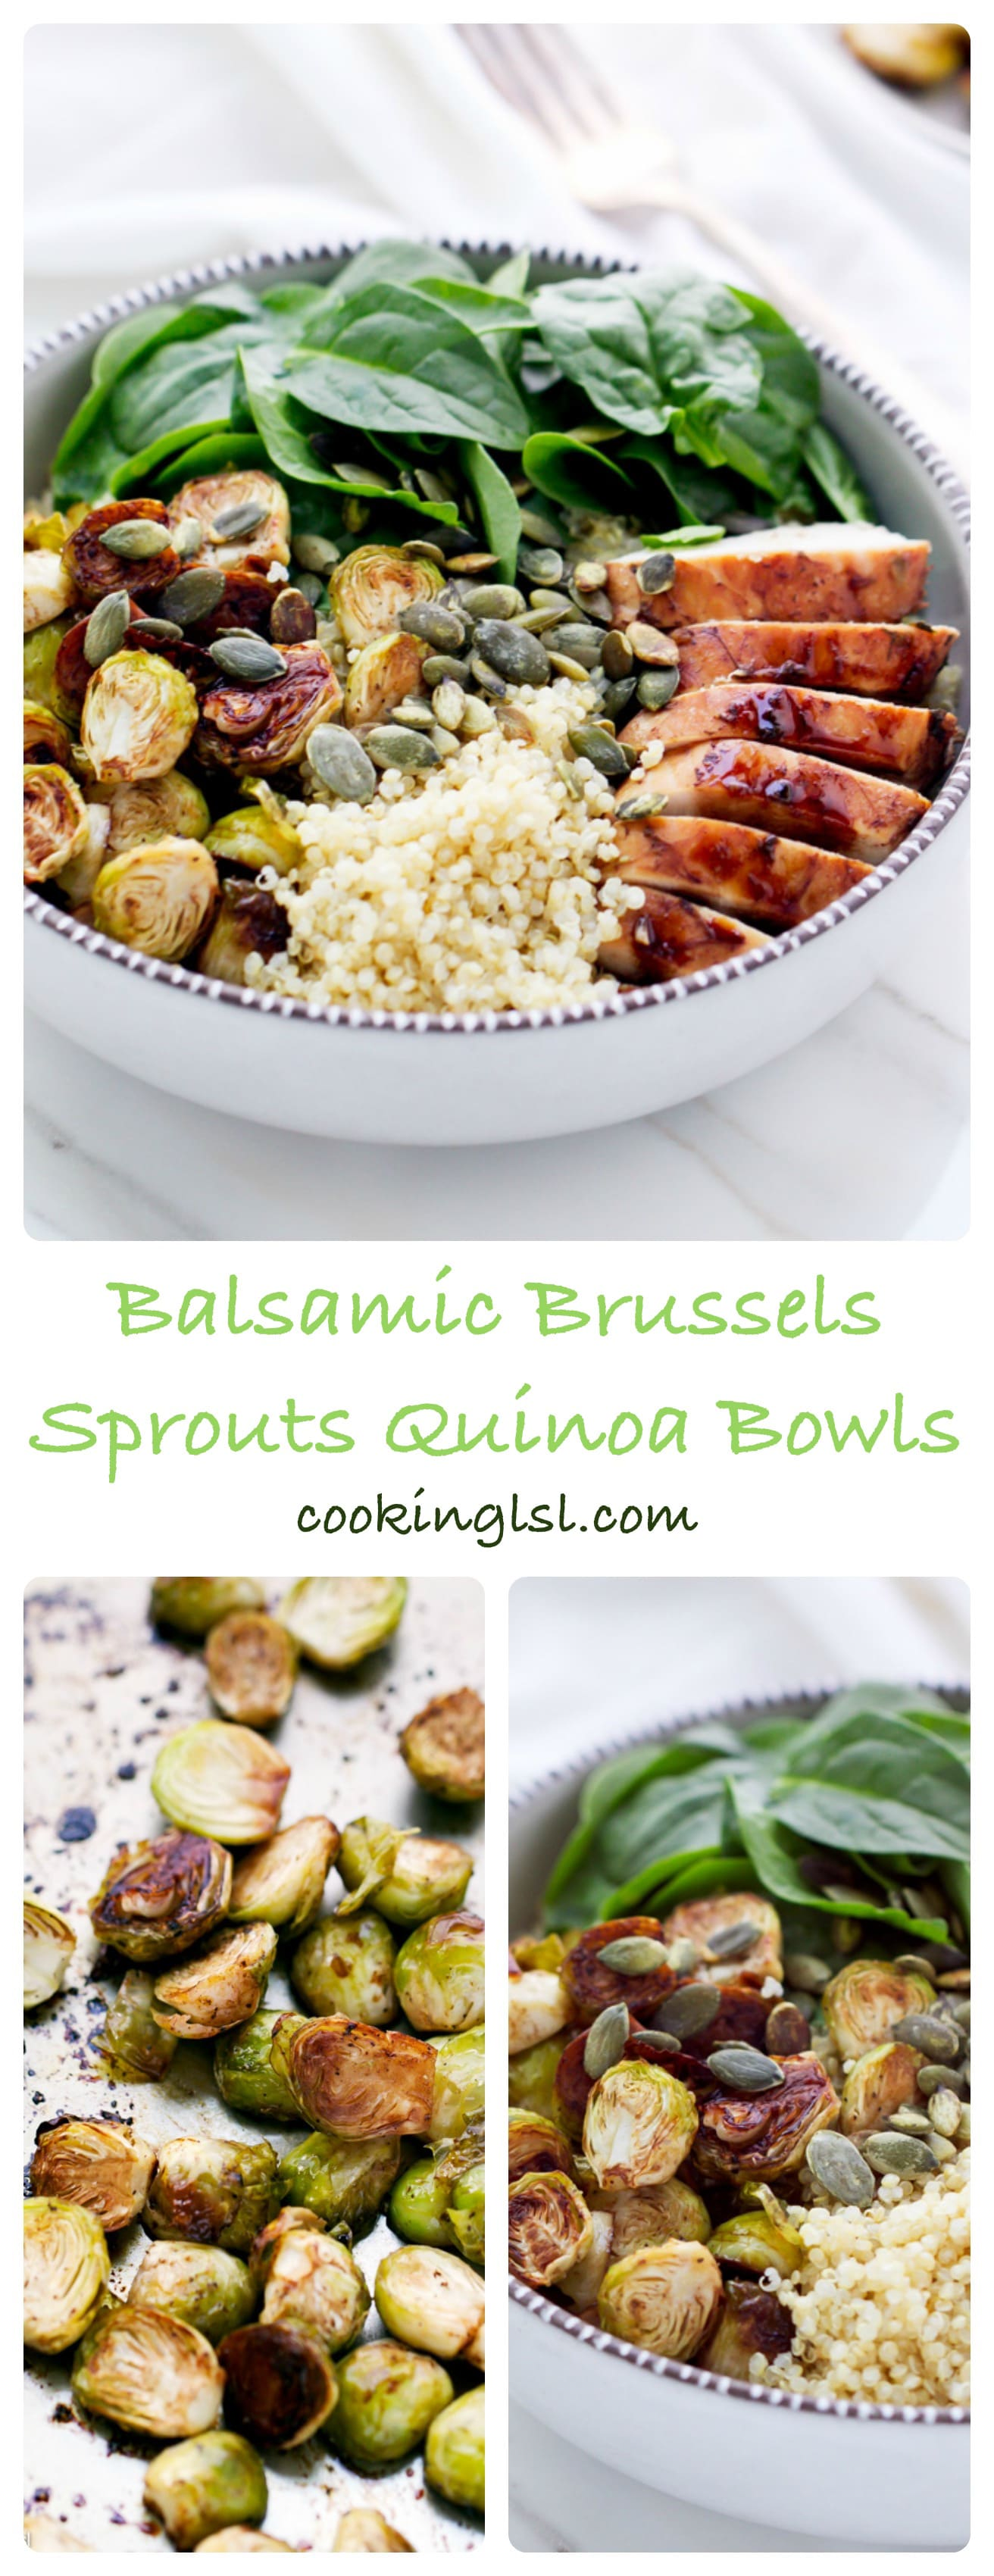 balsamic-roasted-brussels-sprouts-quinoa-bowls-spinach